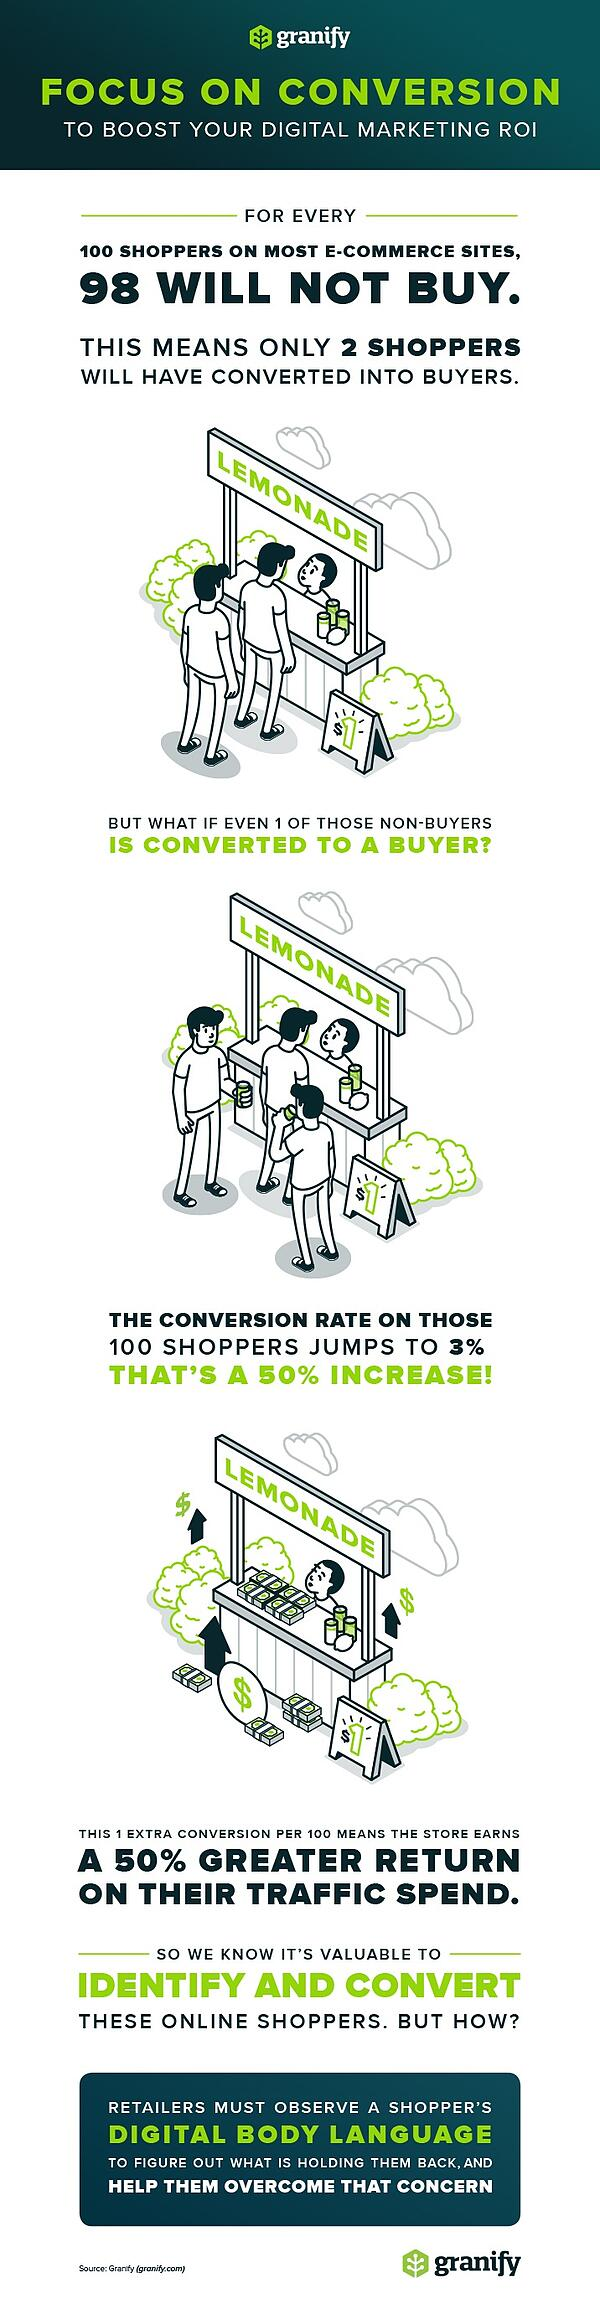 vertical-infographic-1percent-conversion-rate-increase-equals-50percent-roi-uplift-with-lemonade-stand-metaphor-illustration